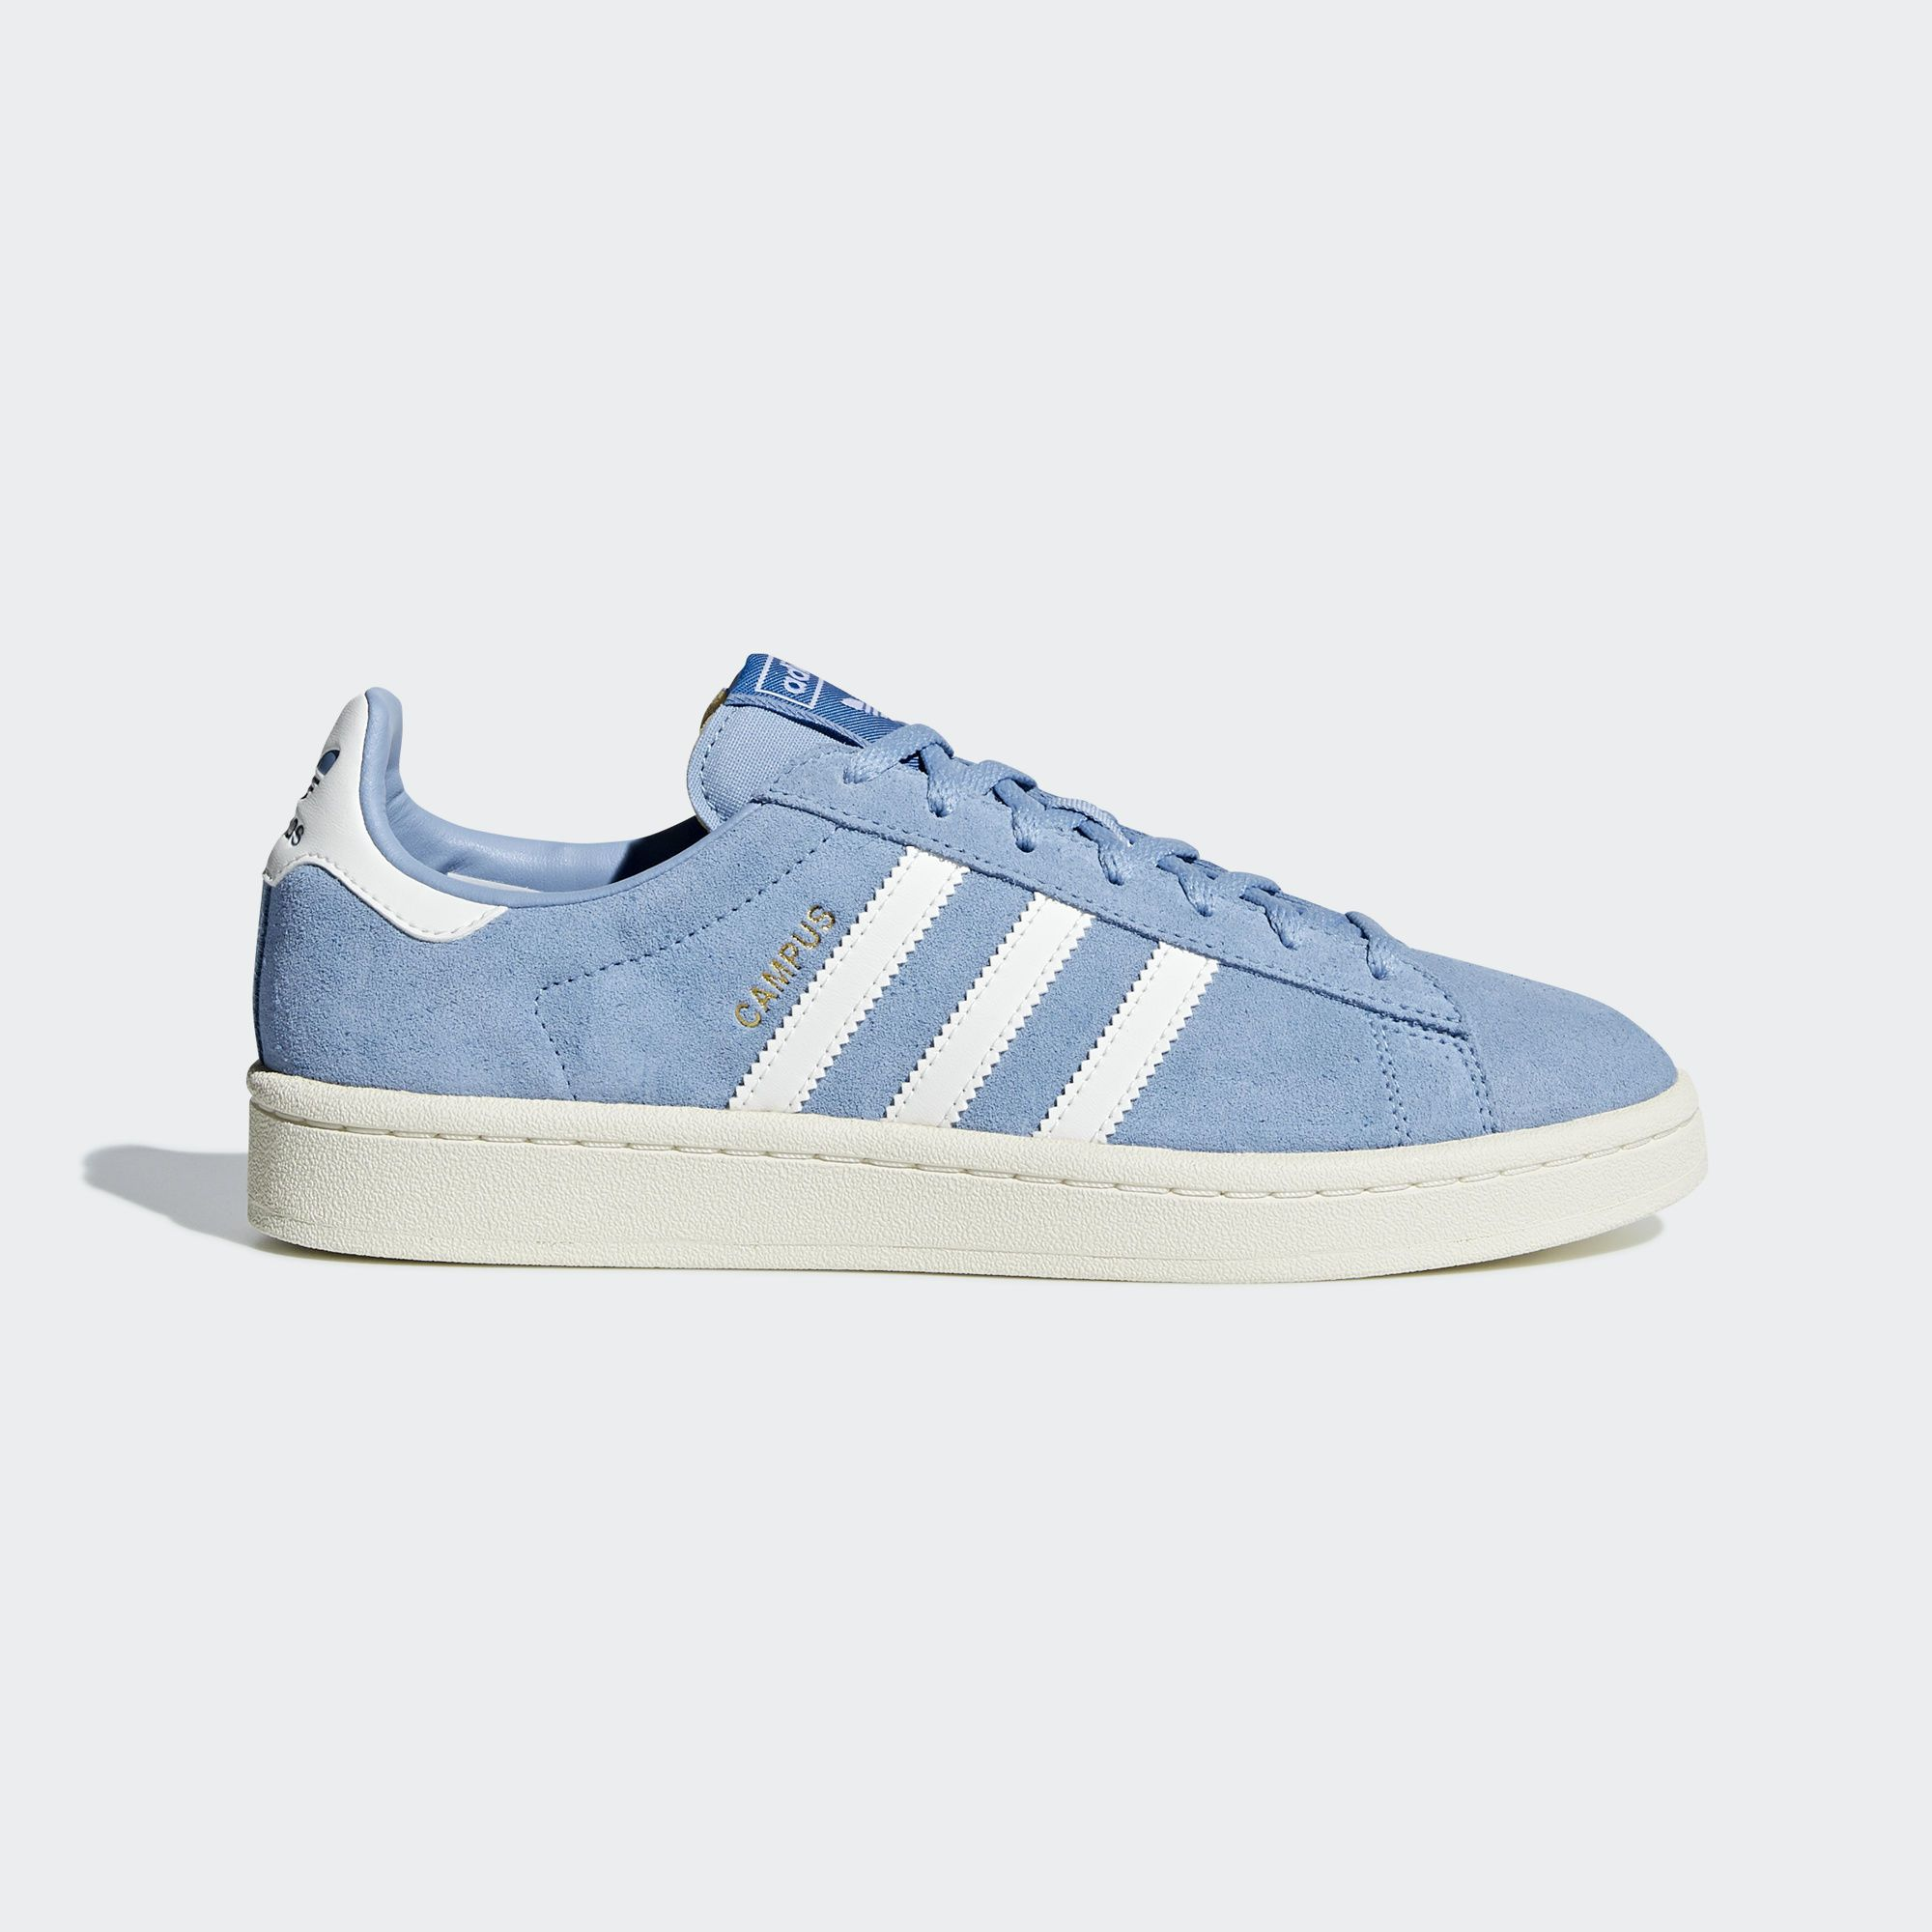 best service c316a a9429 Discover ideas about Adidas Campus